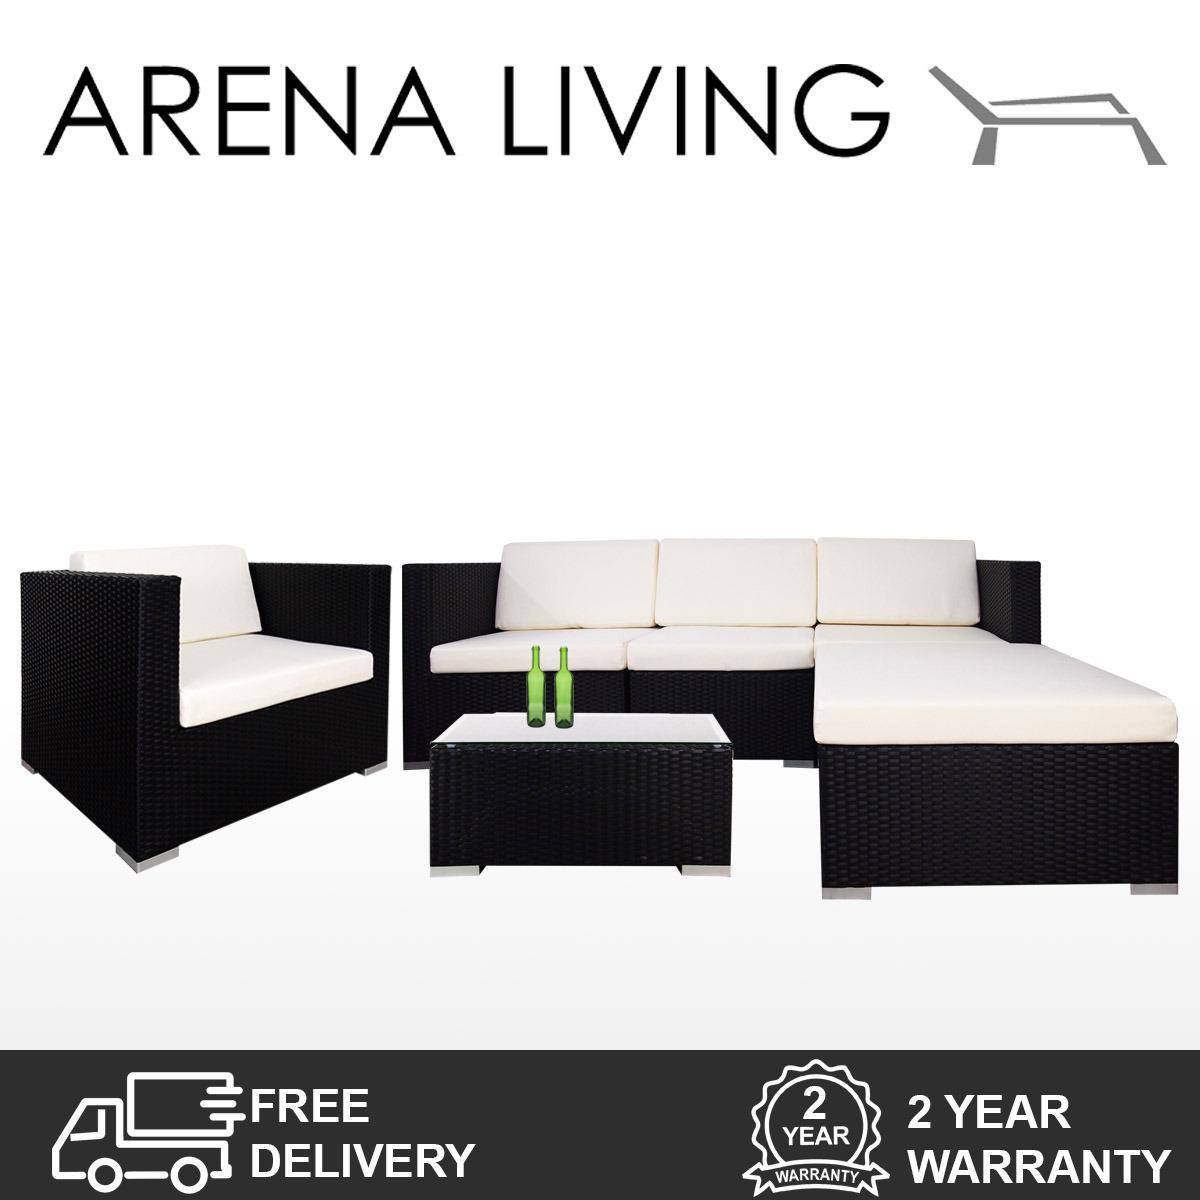 How To Get Arena Living Summer Outdoor Modular Sofa Set Ii White Cushions